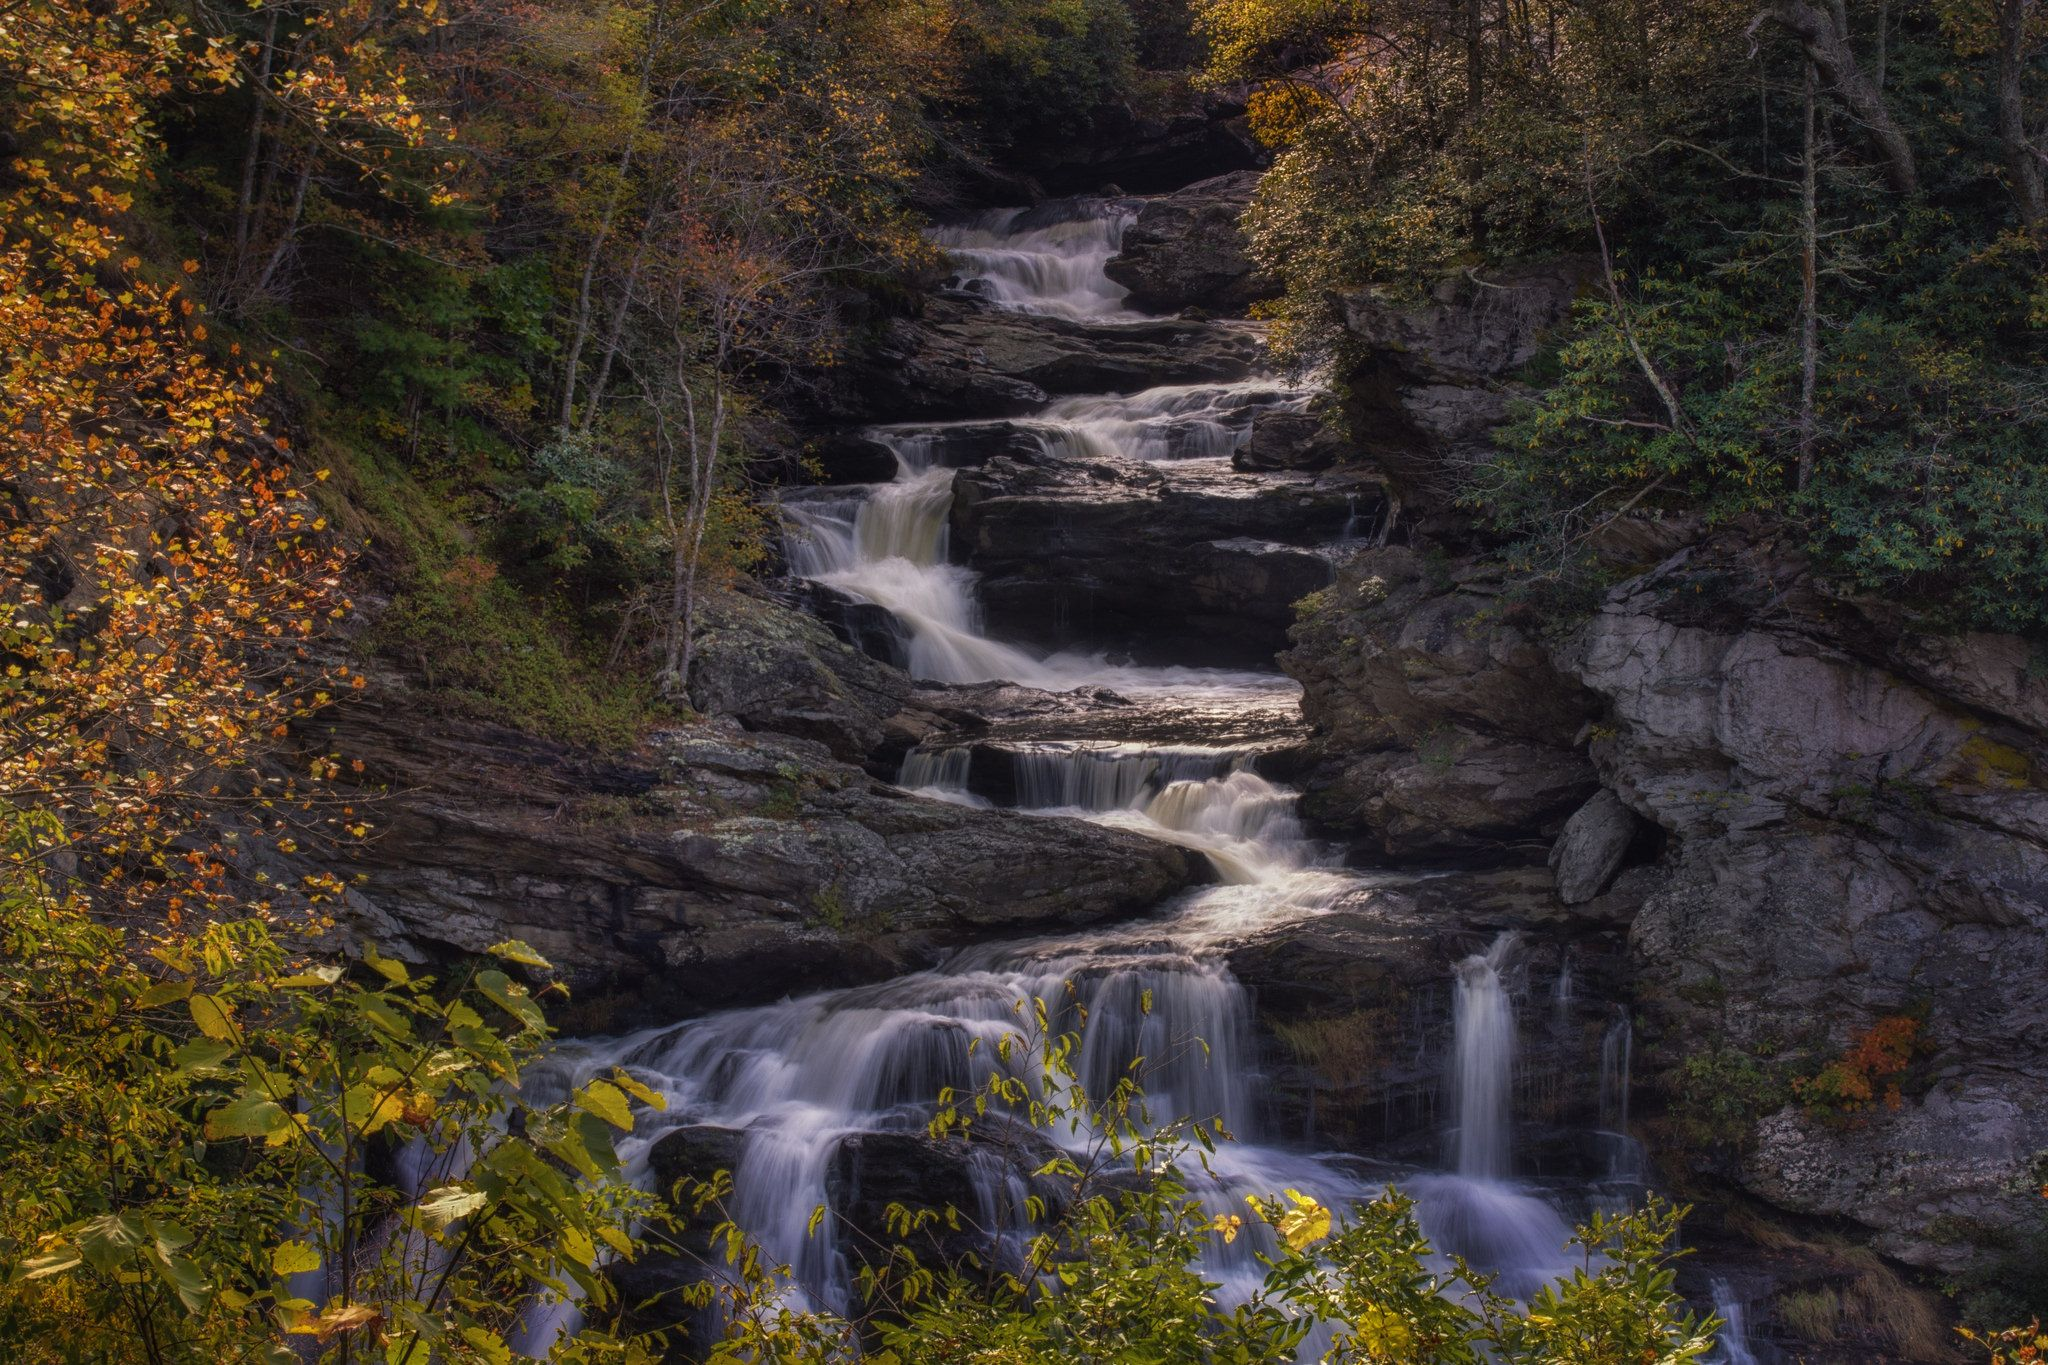 https://flic.kr/p/zDFN1y | Cullasaja Falls | Just down the river from Dry Falls (also called Upper Cullasaja Falls) is Cullasaja Falls right off the road near Highlands, NC